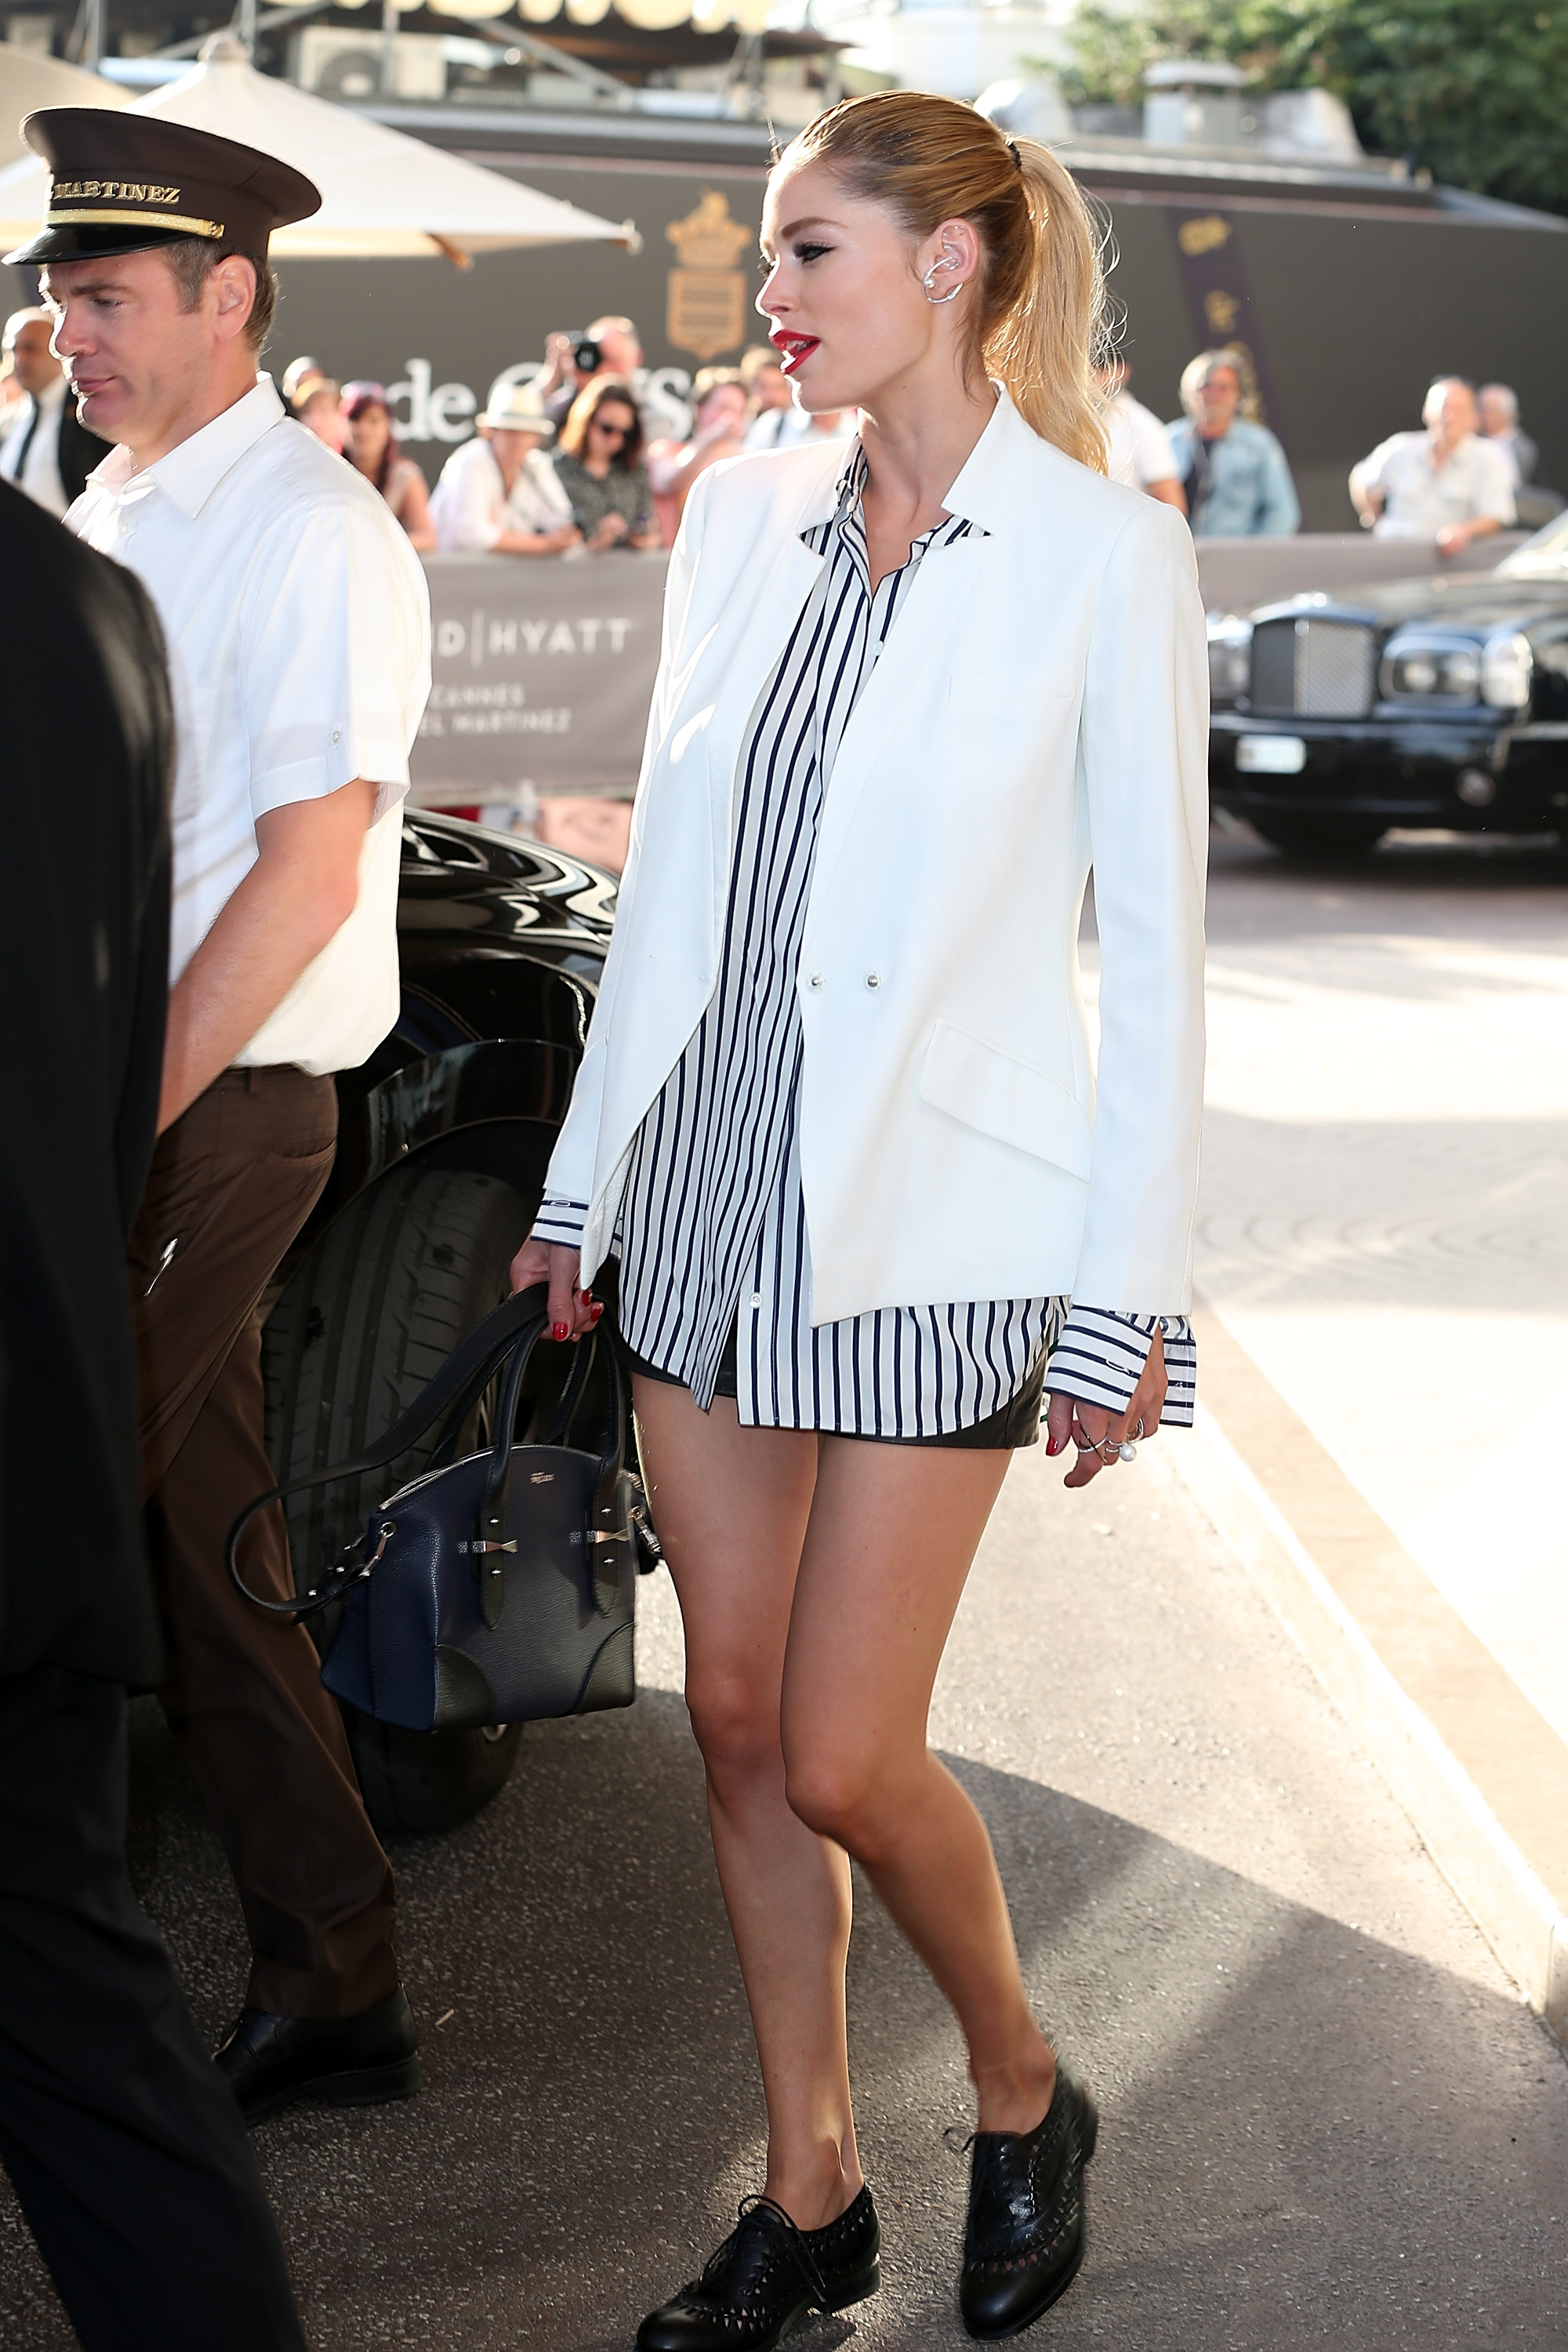 http://www.trendalert.nl/p/26298/throwback_alle_red_carpet_looks_van_doutzen_in_cannes